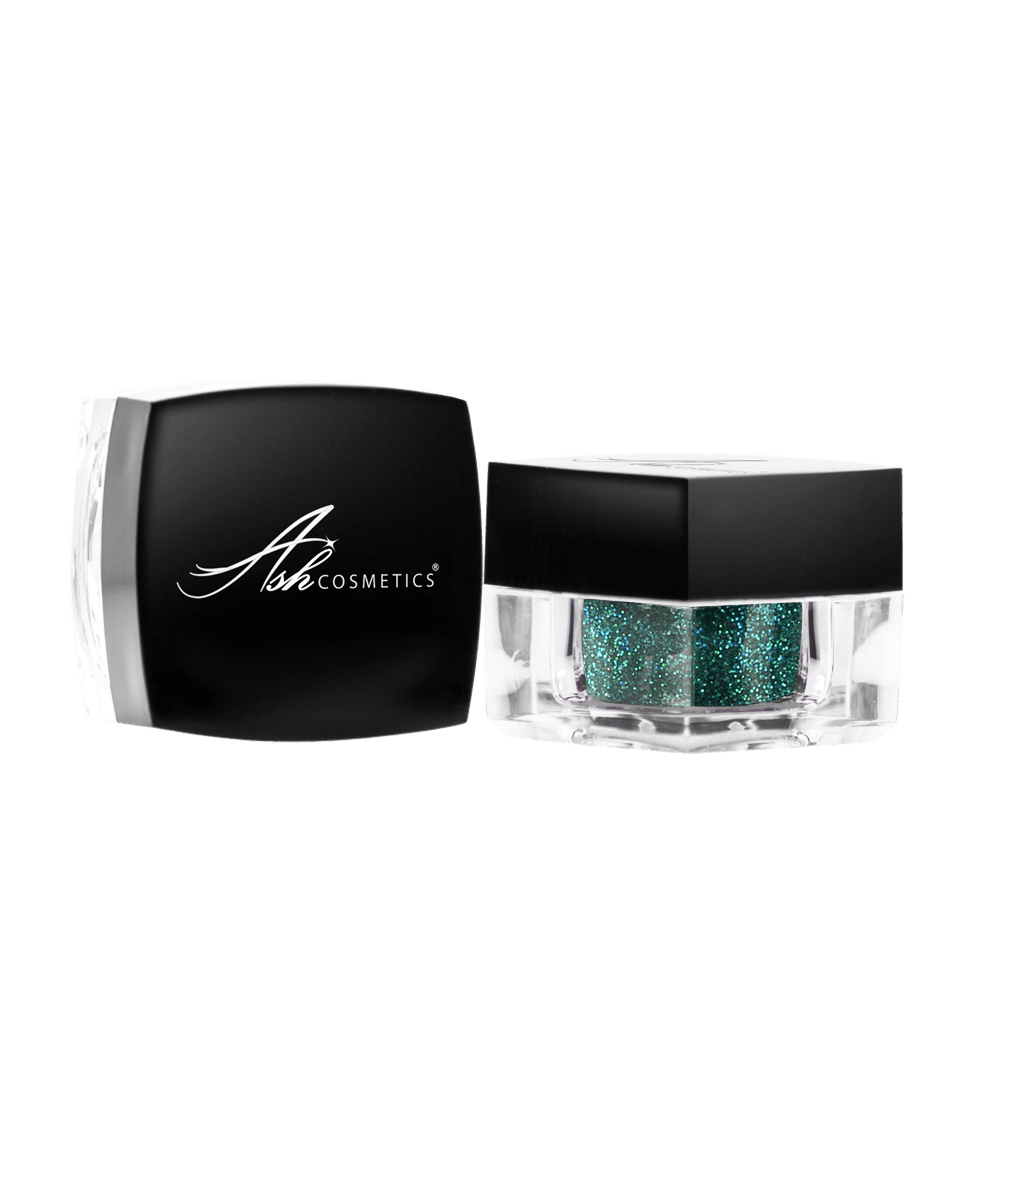 Glitter Eyeshadow Green - Ashcosmetics